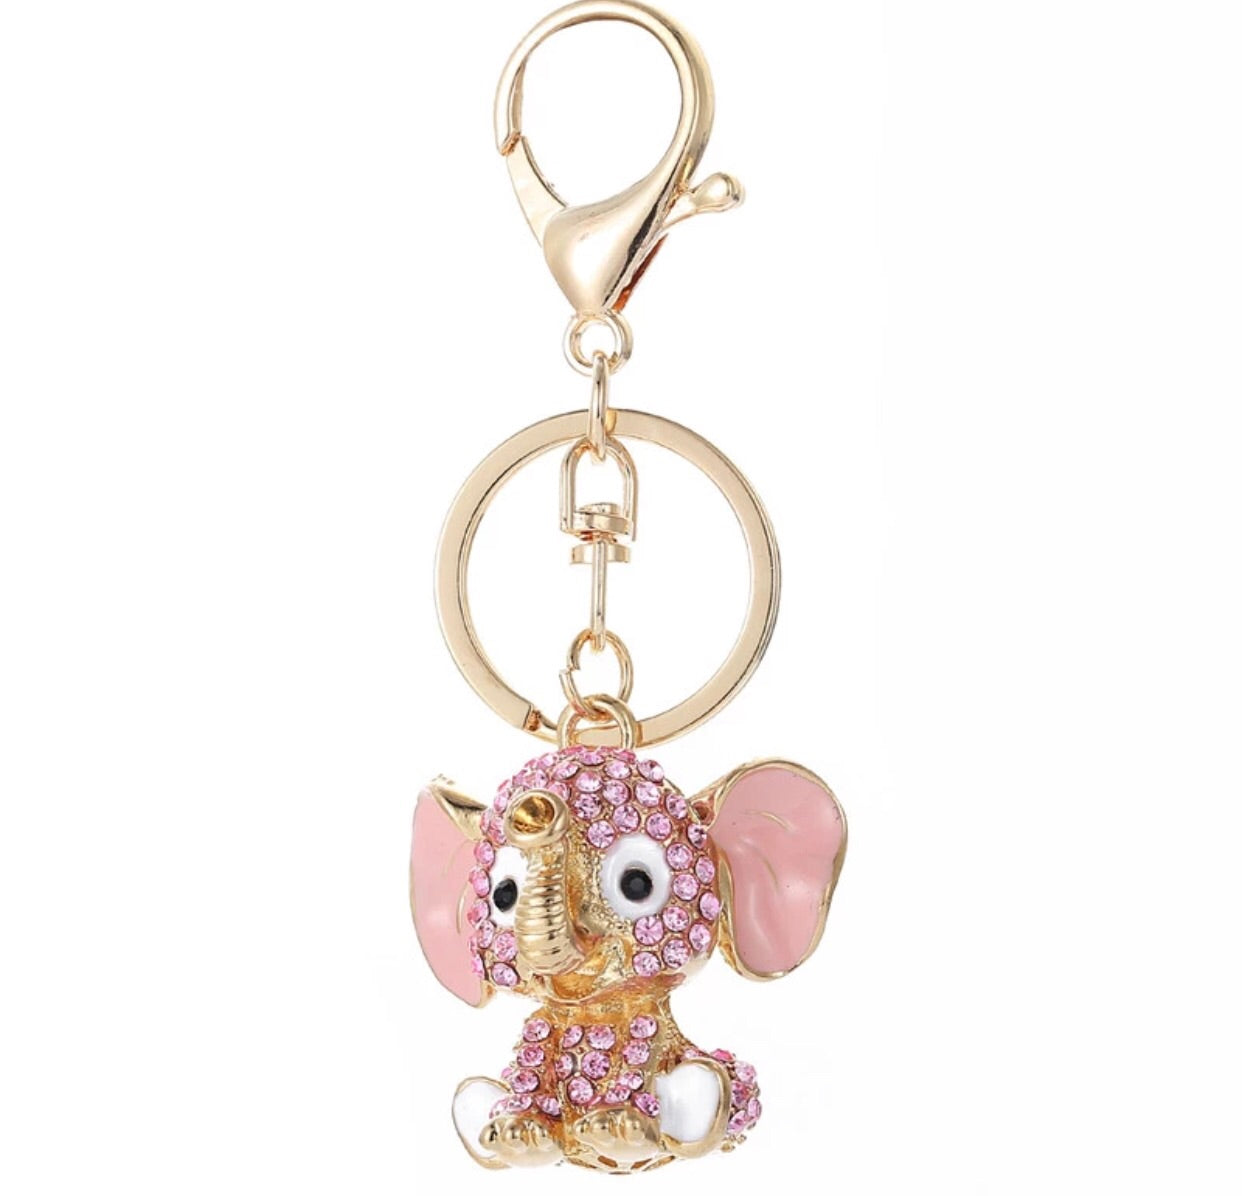 Baby elephant light pink bag charm keychain